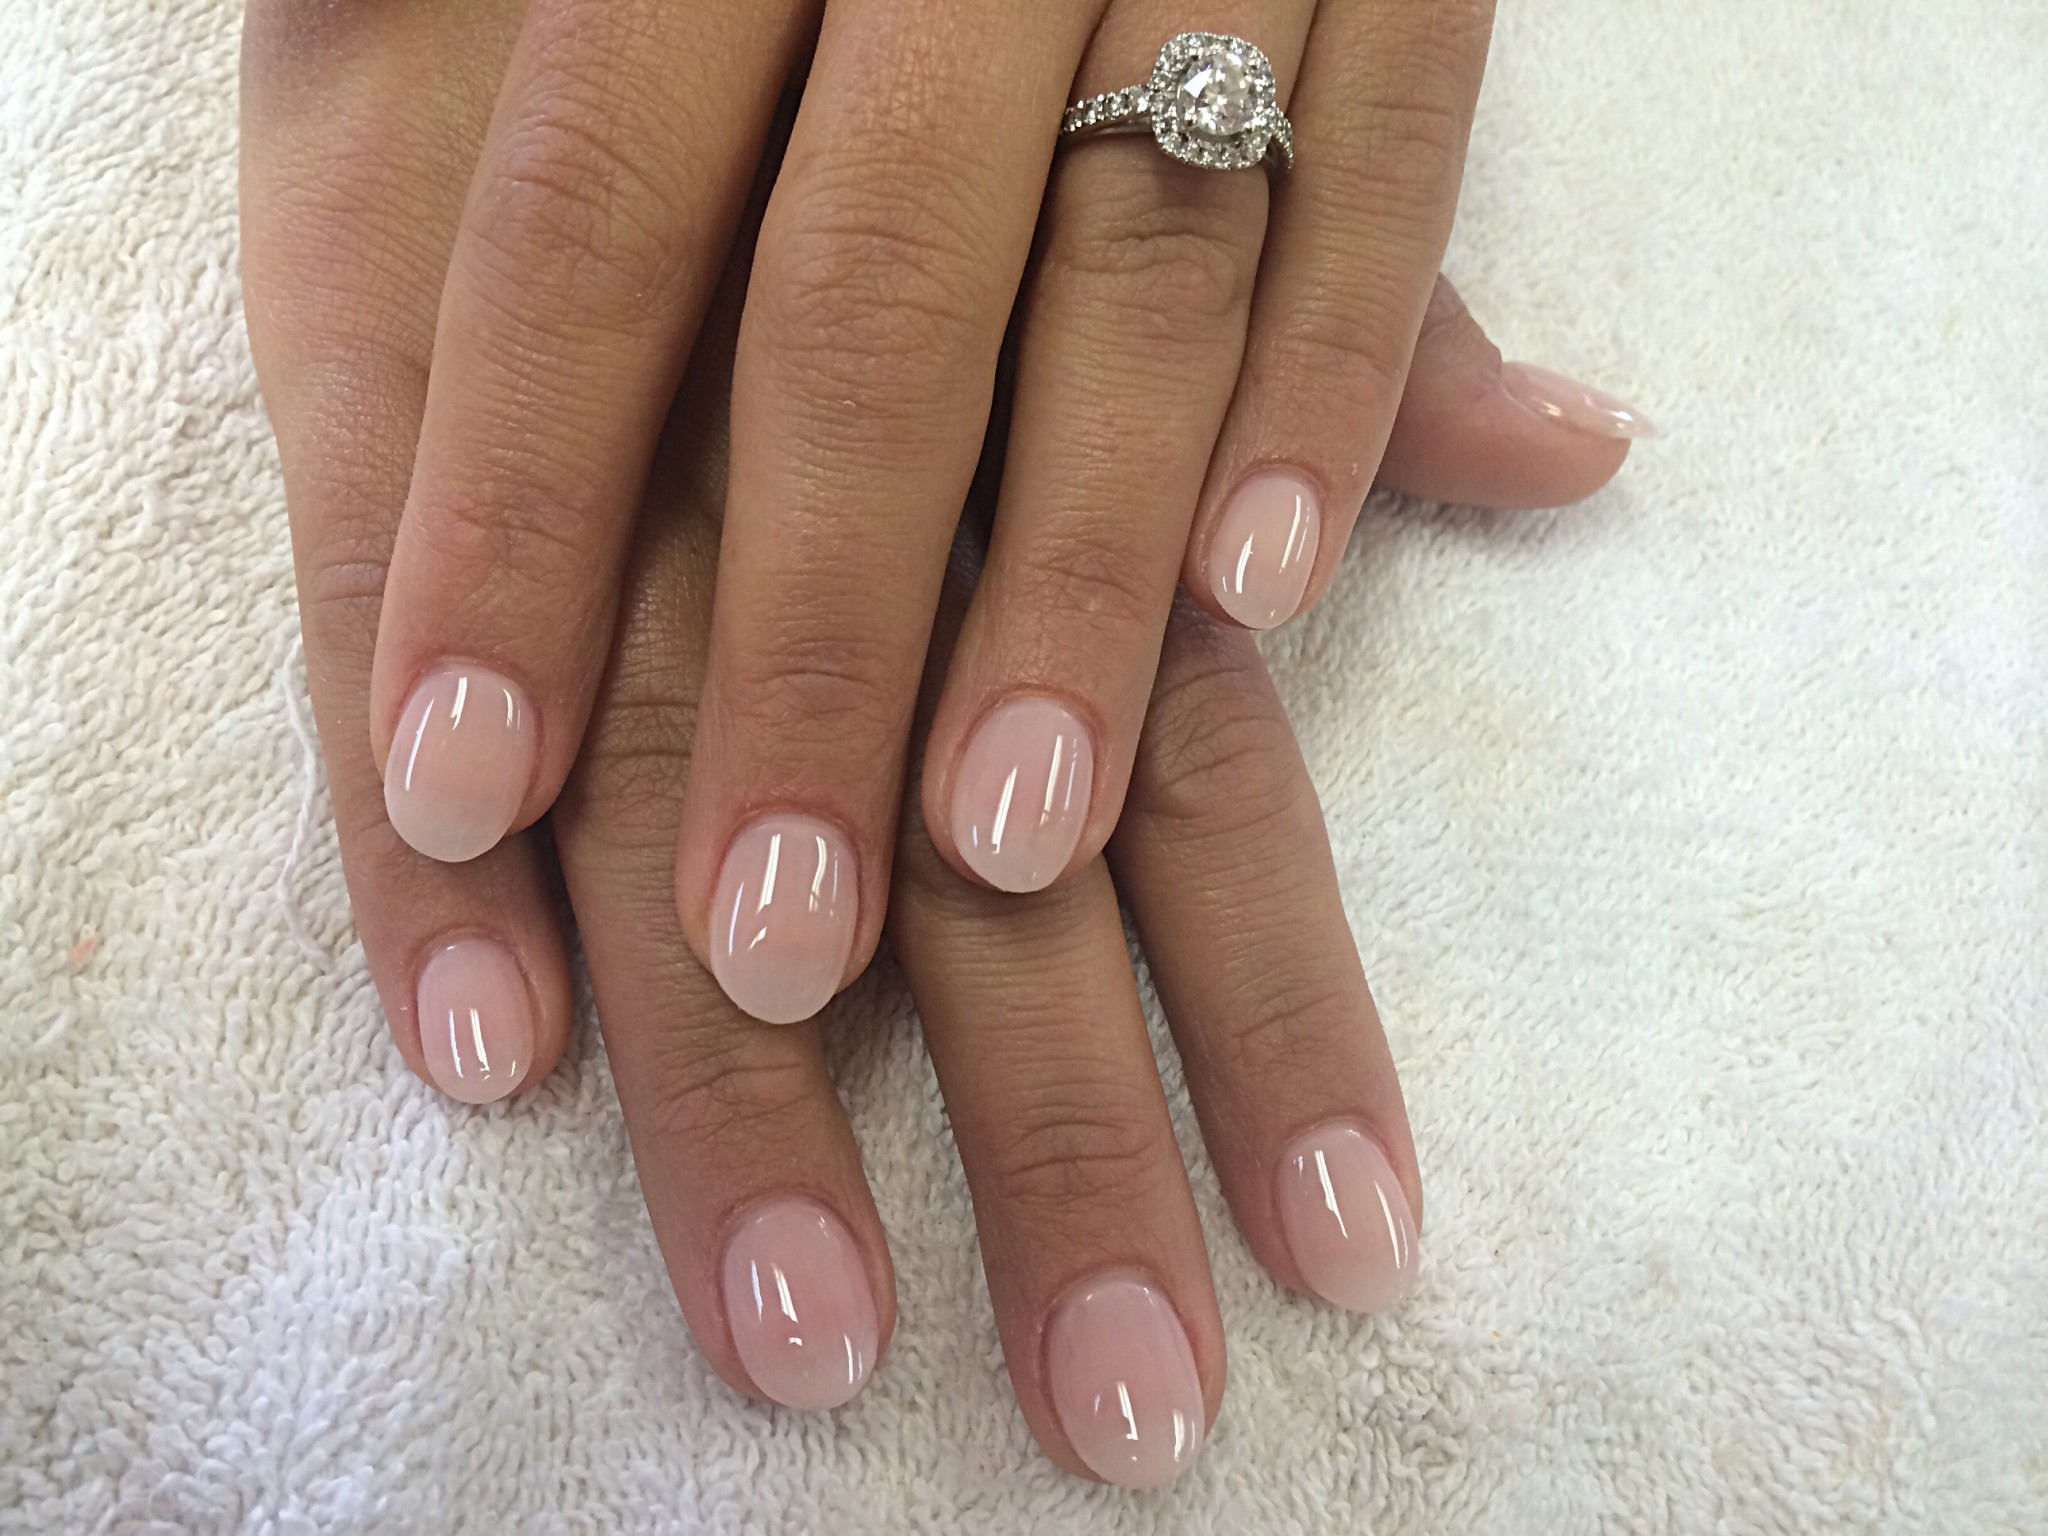 Acrylic on real nails - New Expression Nails